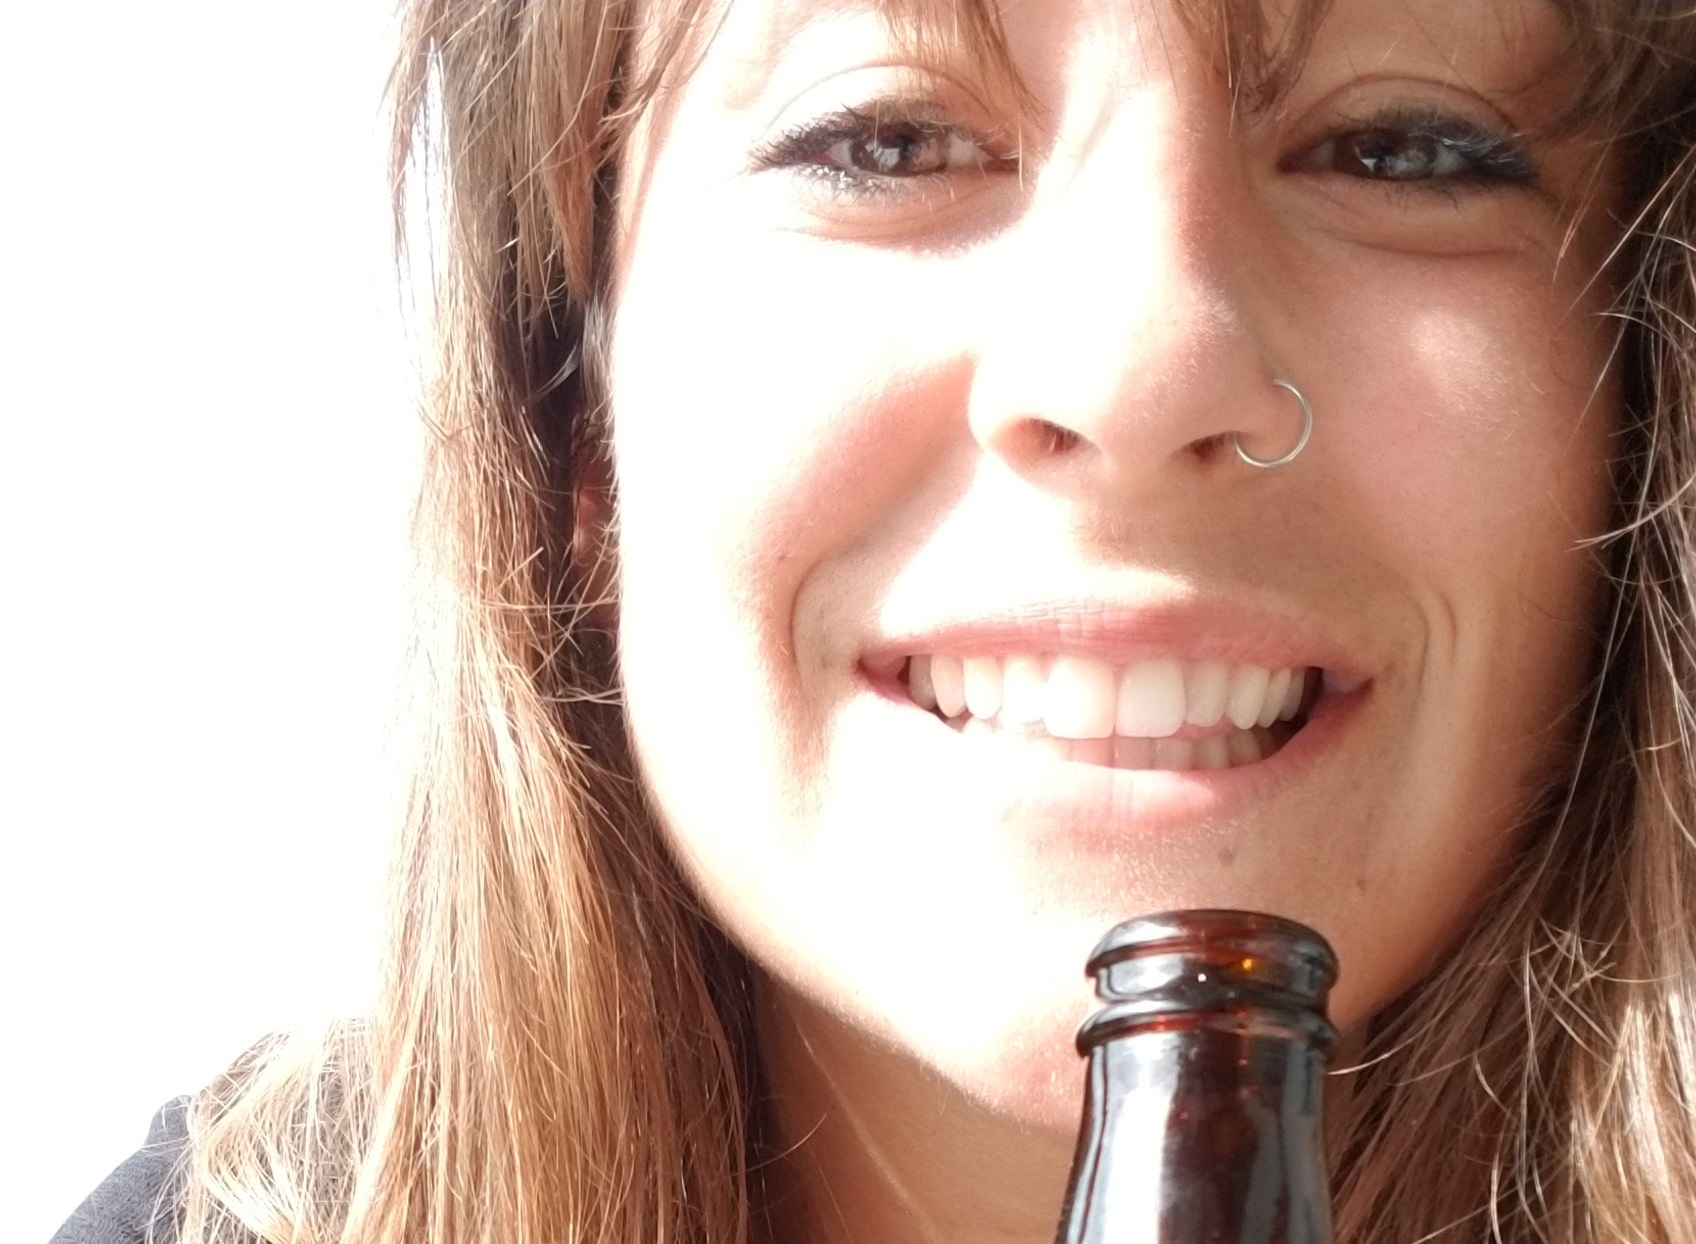 smiling with beer